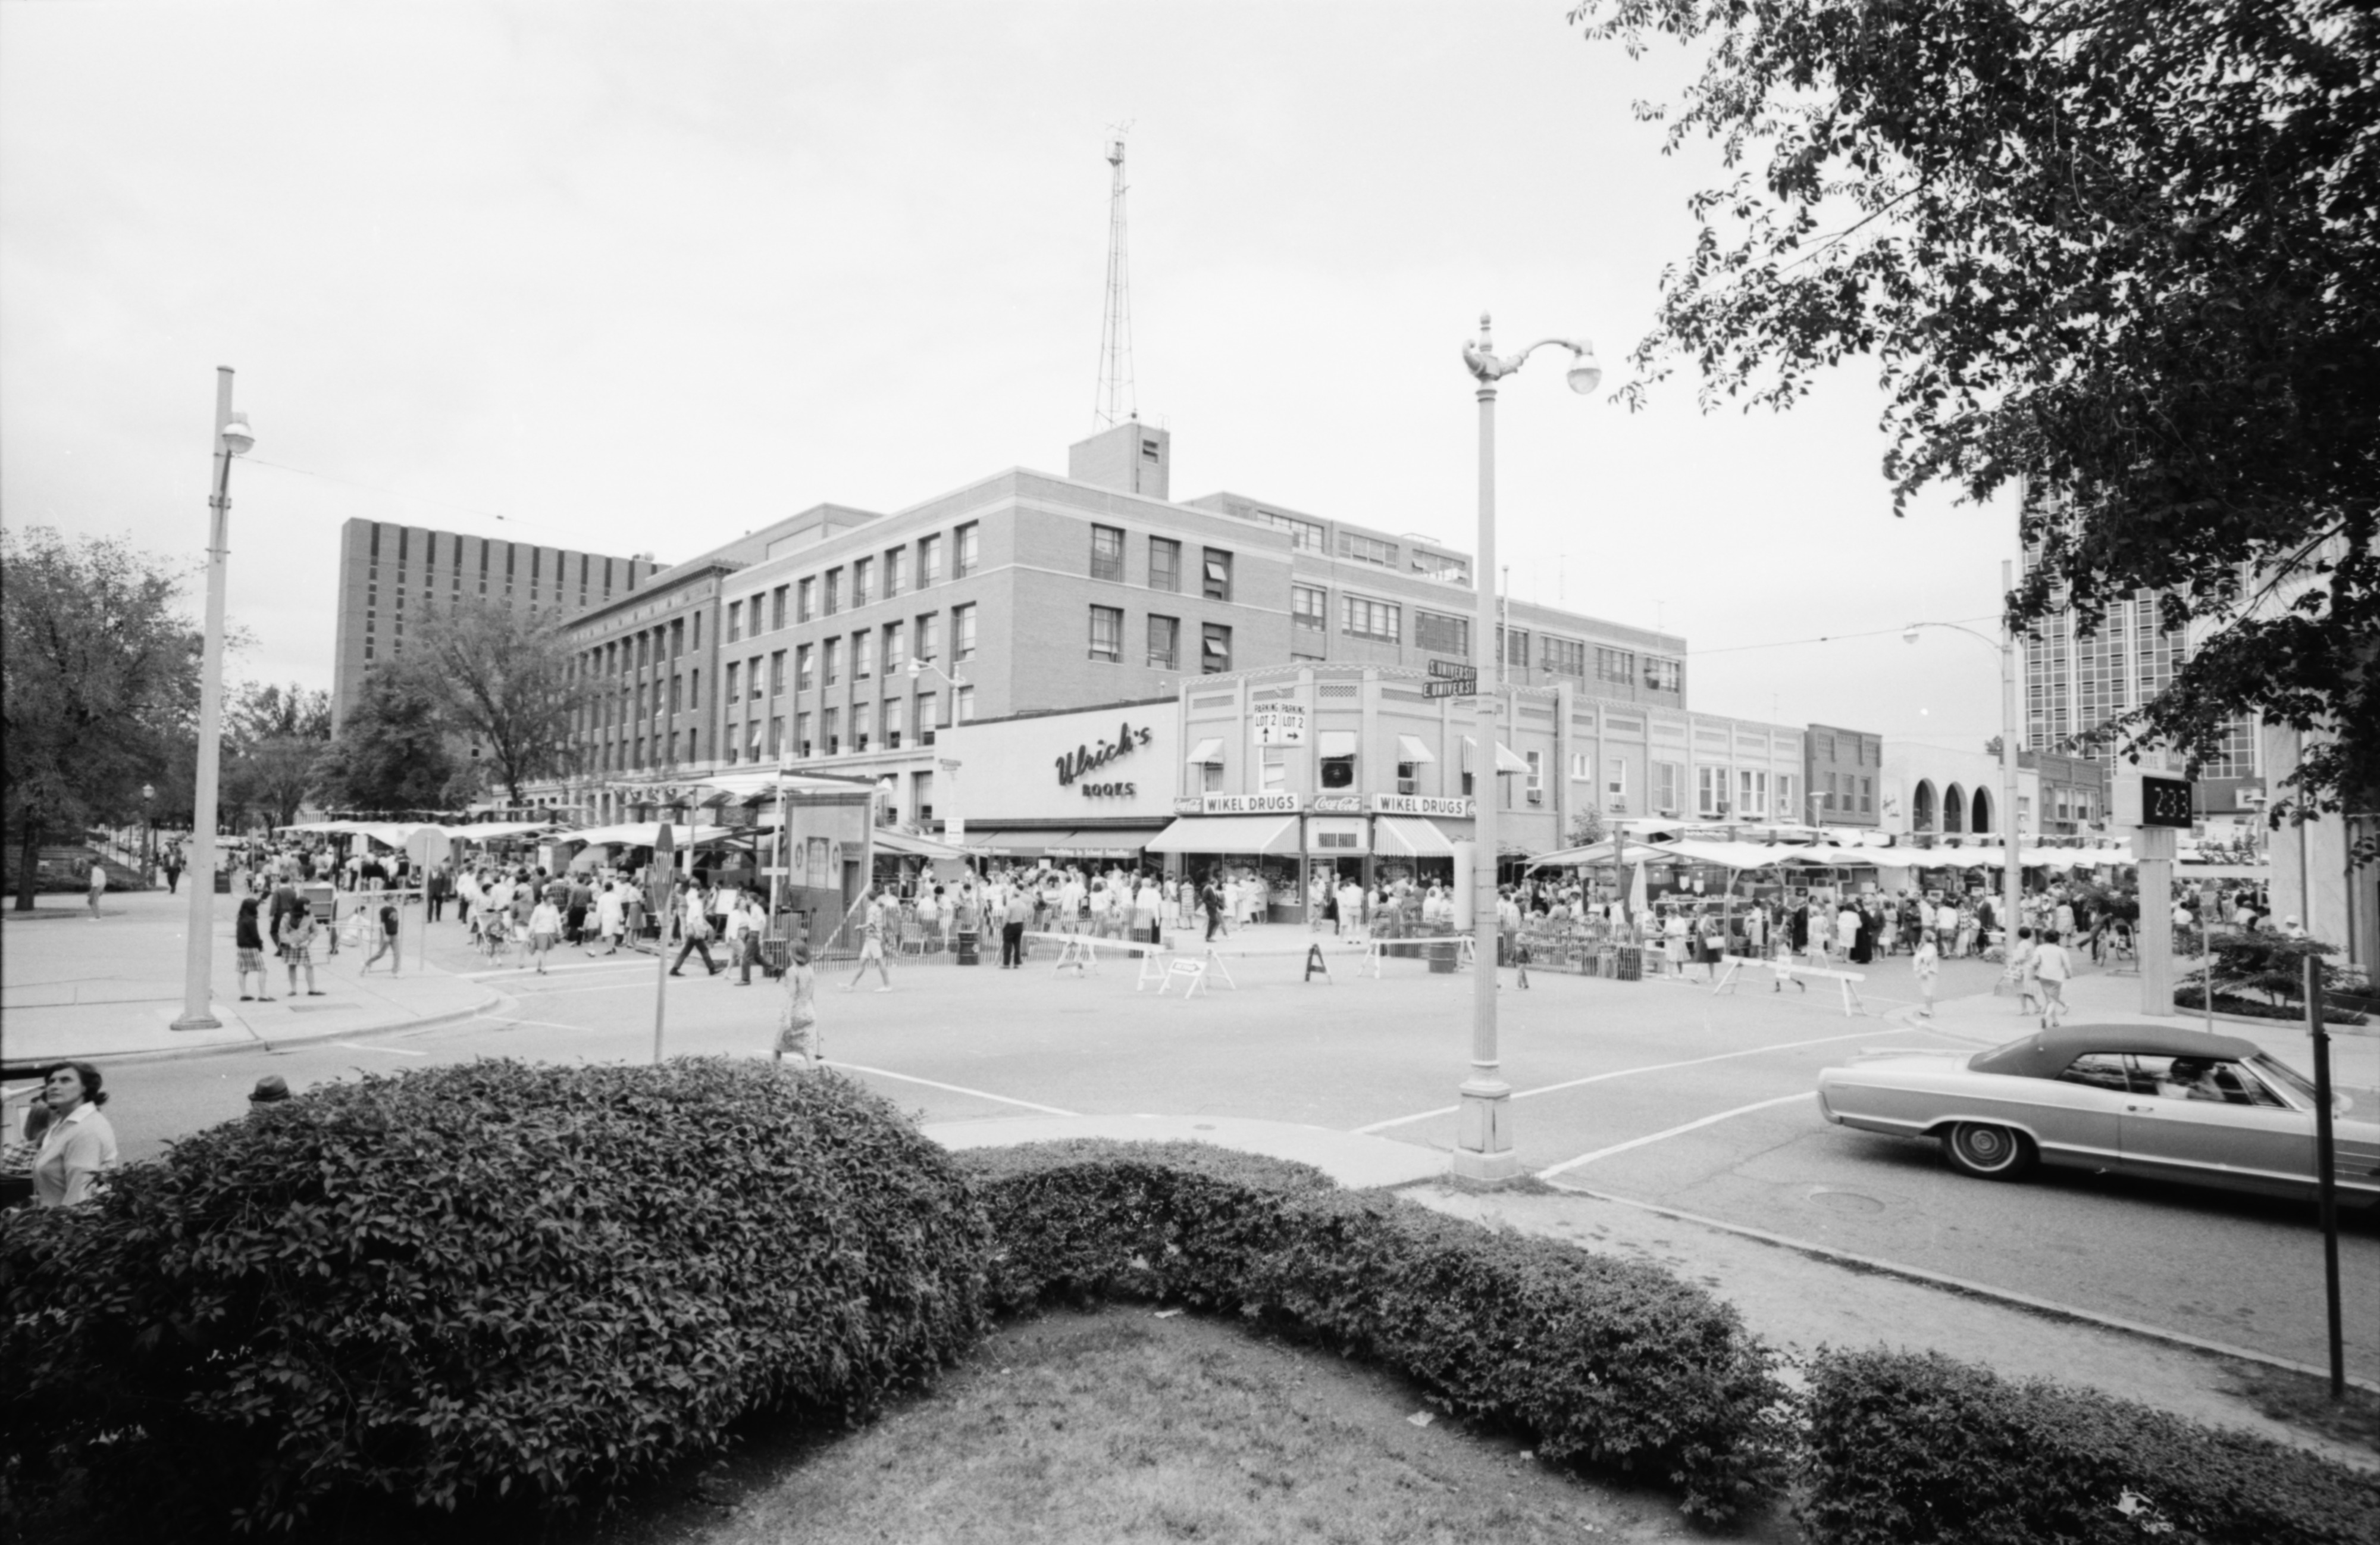 Across S. University Looking At The Ann Arbor Art Fair, July 1965 image